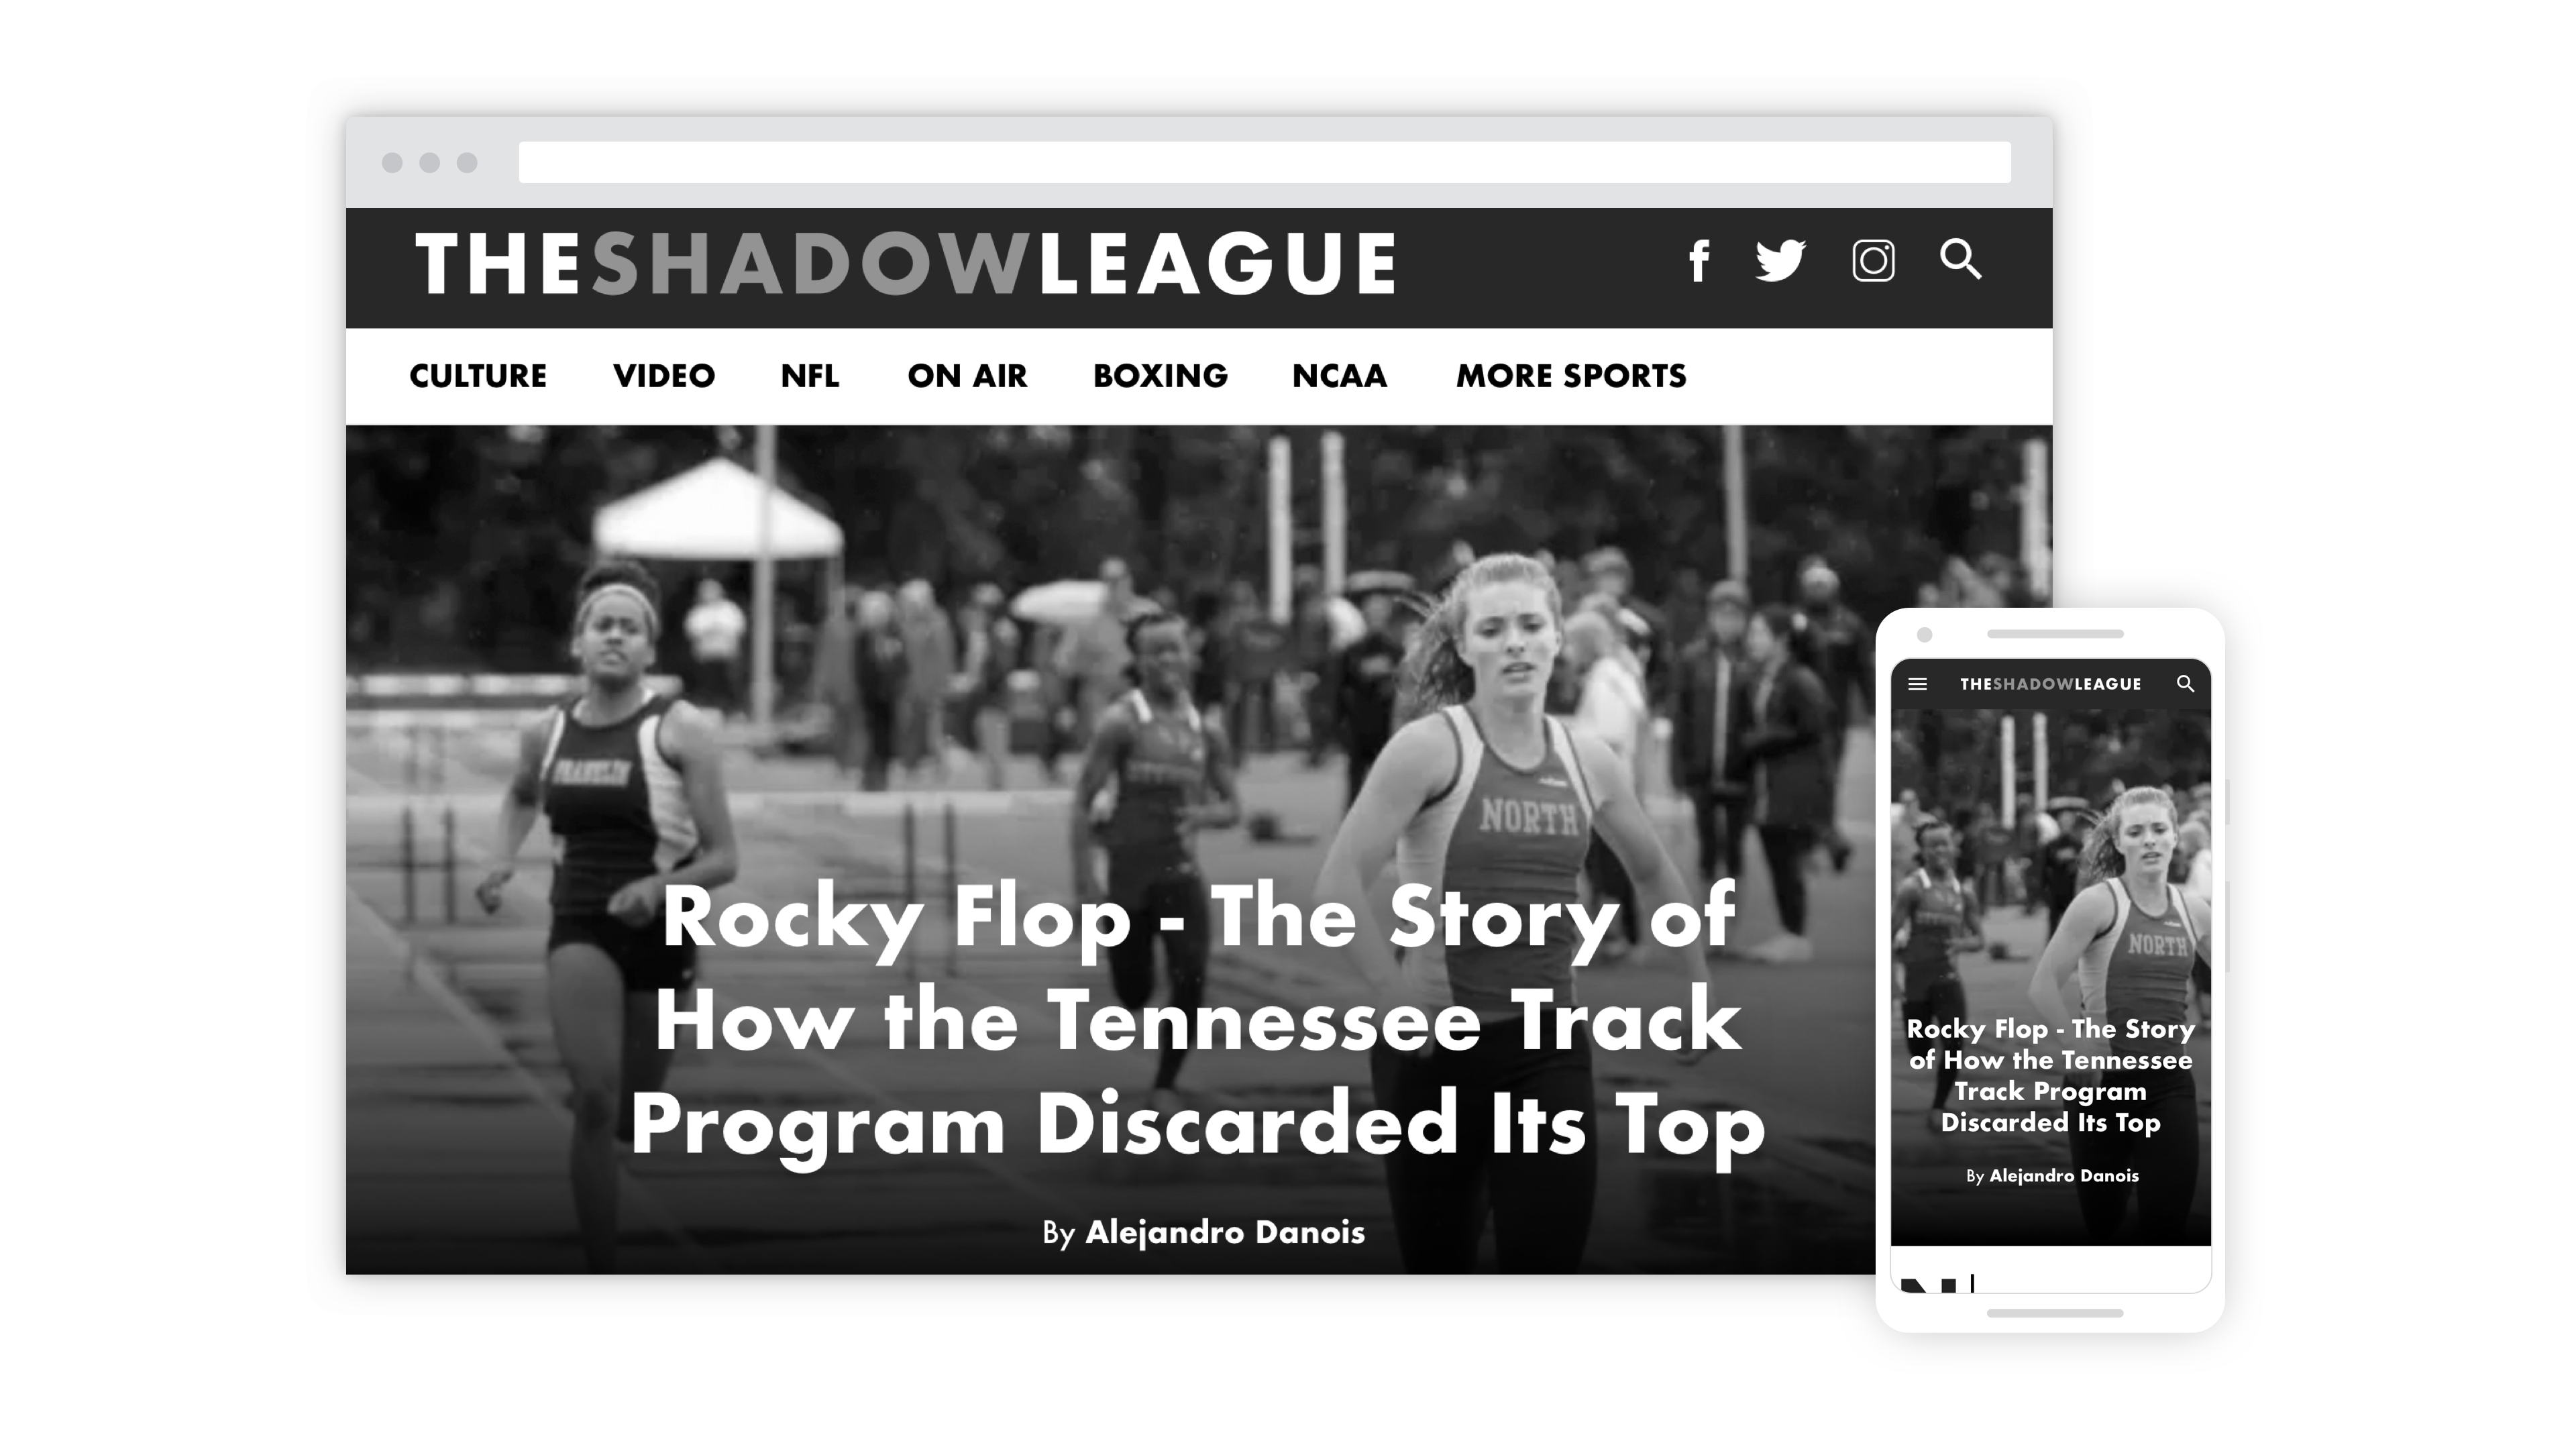 The Shadow League's longform article format on desktop and mobile.